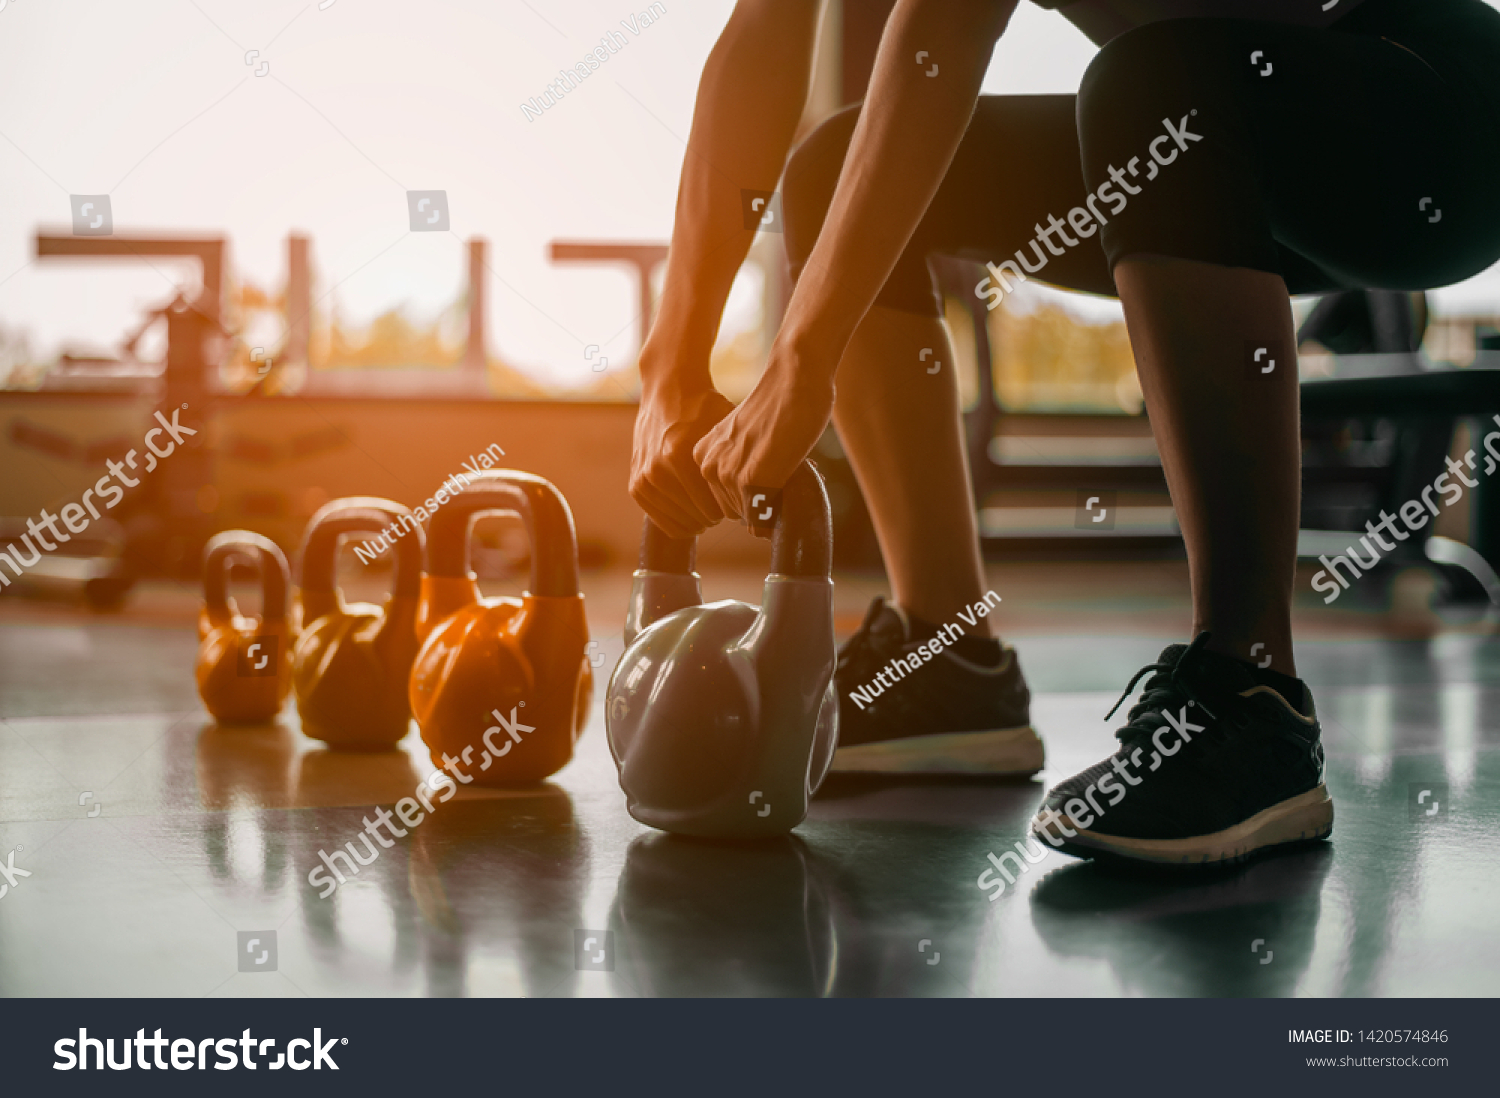 fitness ,workout, gym exercise ,lifestyle  and healthy concept.Woman in exercise gear standing in a row holding dumbbells during an exercise class at the gym.Fitness training with kettlebell in sport  #1420574846